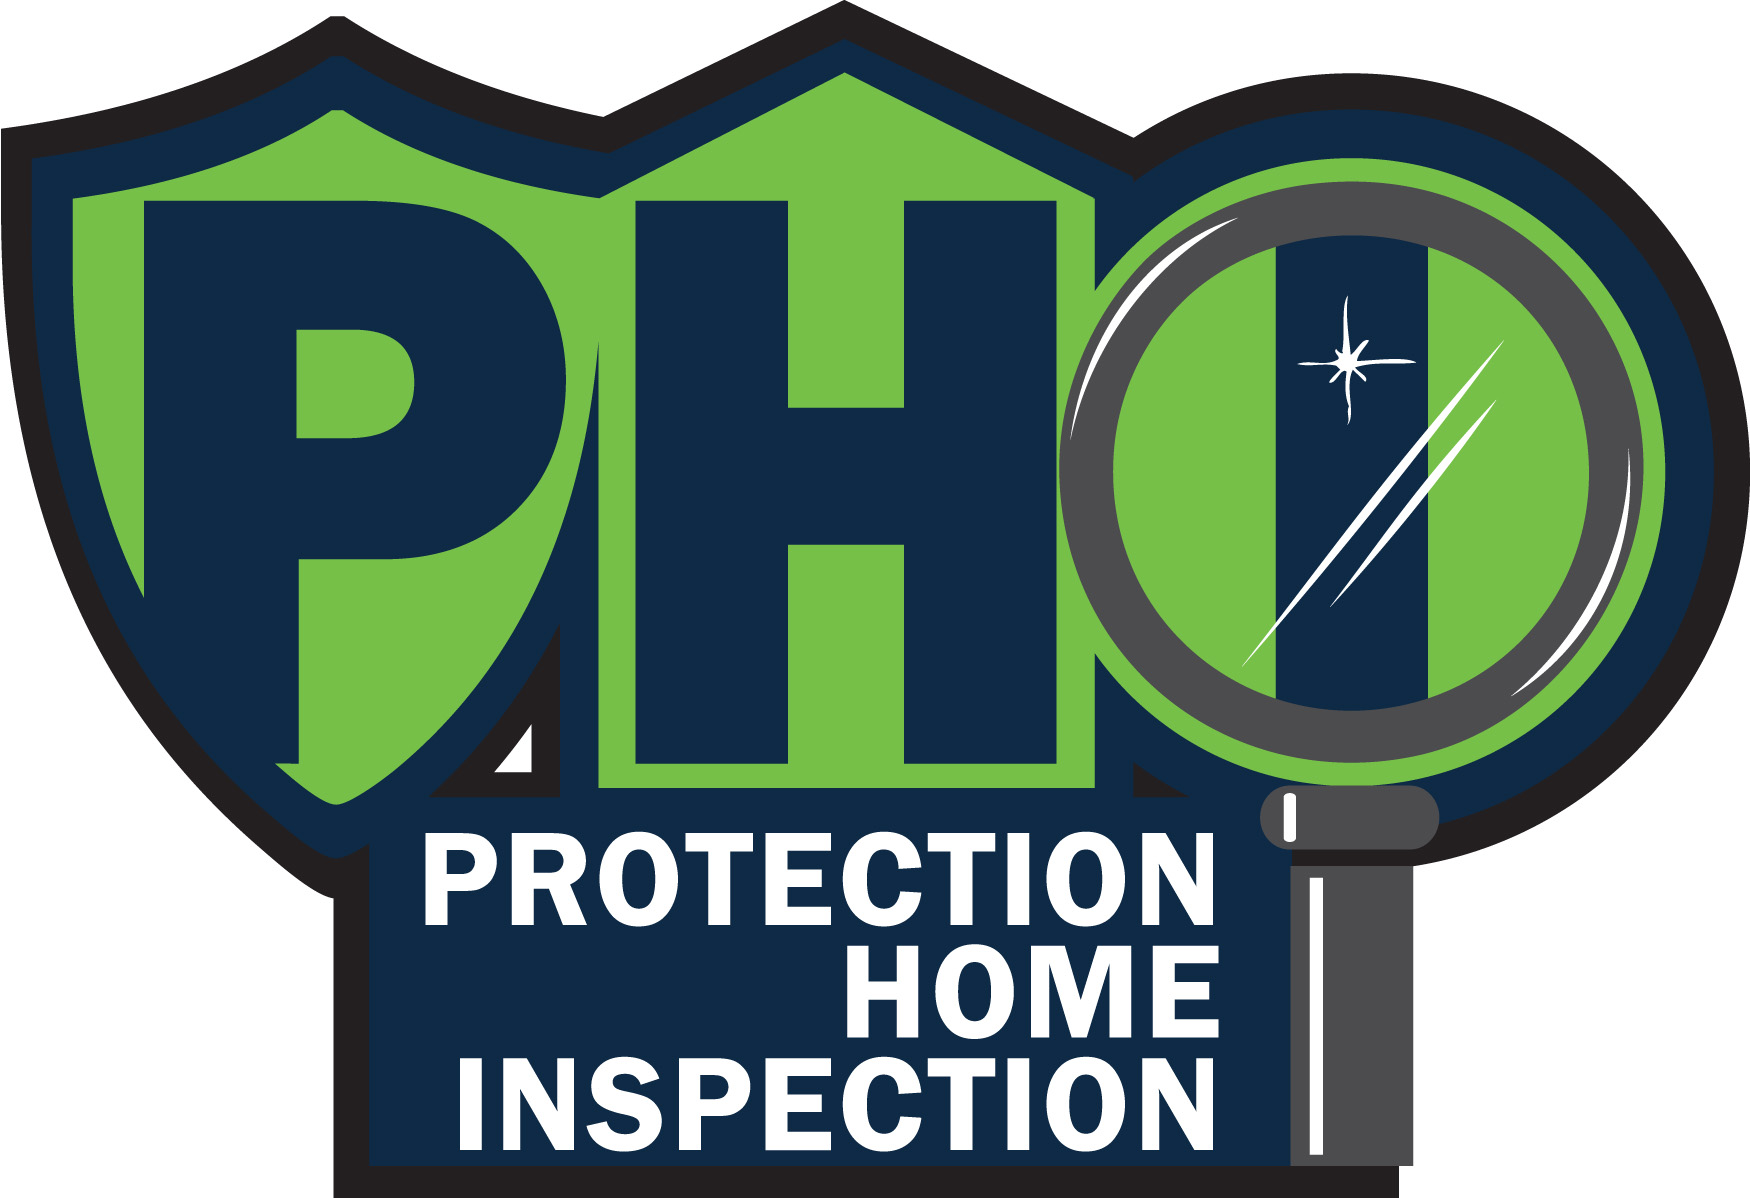 Protection Home Inspection logo